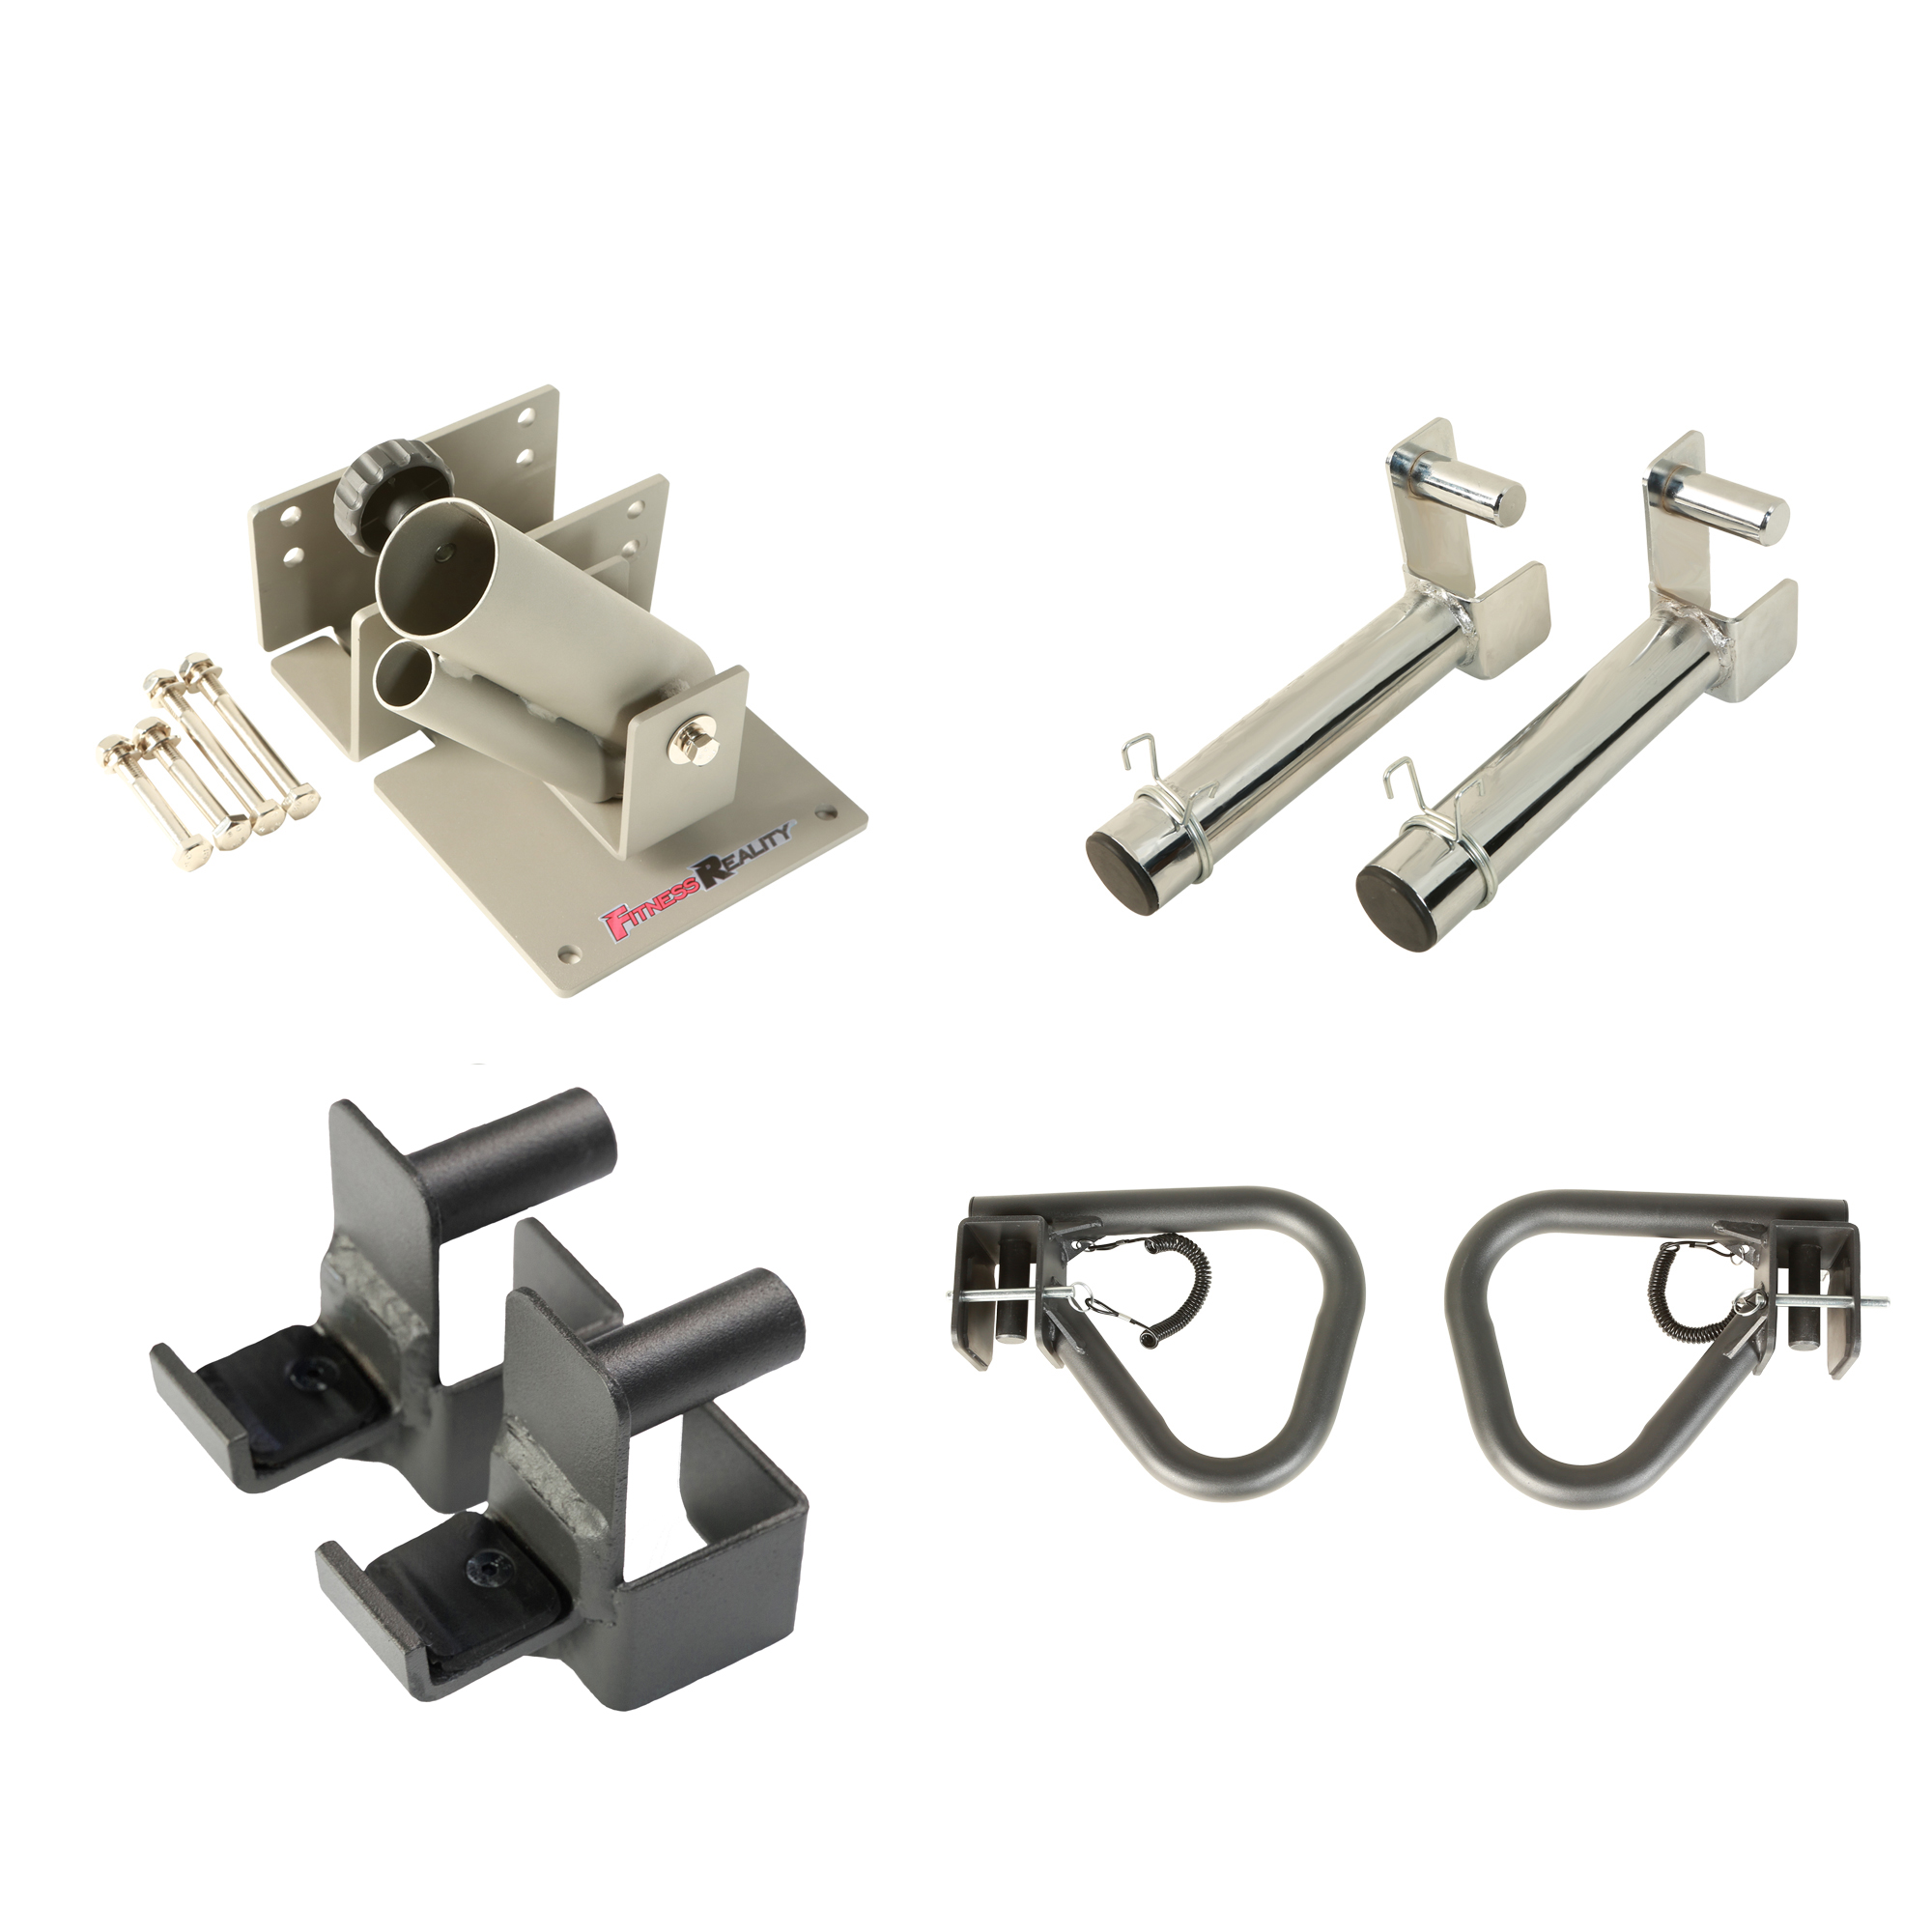 FITNESS REALITY Attachment Set for 2x2 Steel Tubing Power Cages, Includes Landmine, Olympic Plate Holder, 2 J-Hooks, and 2 Dip Bars